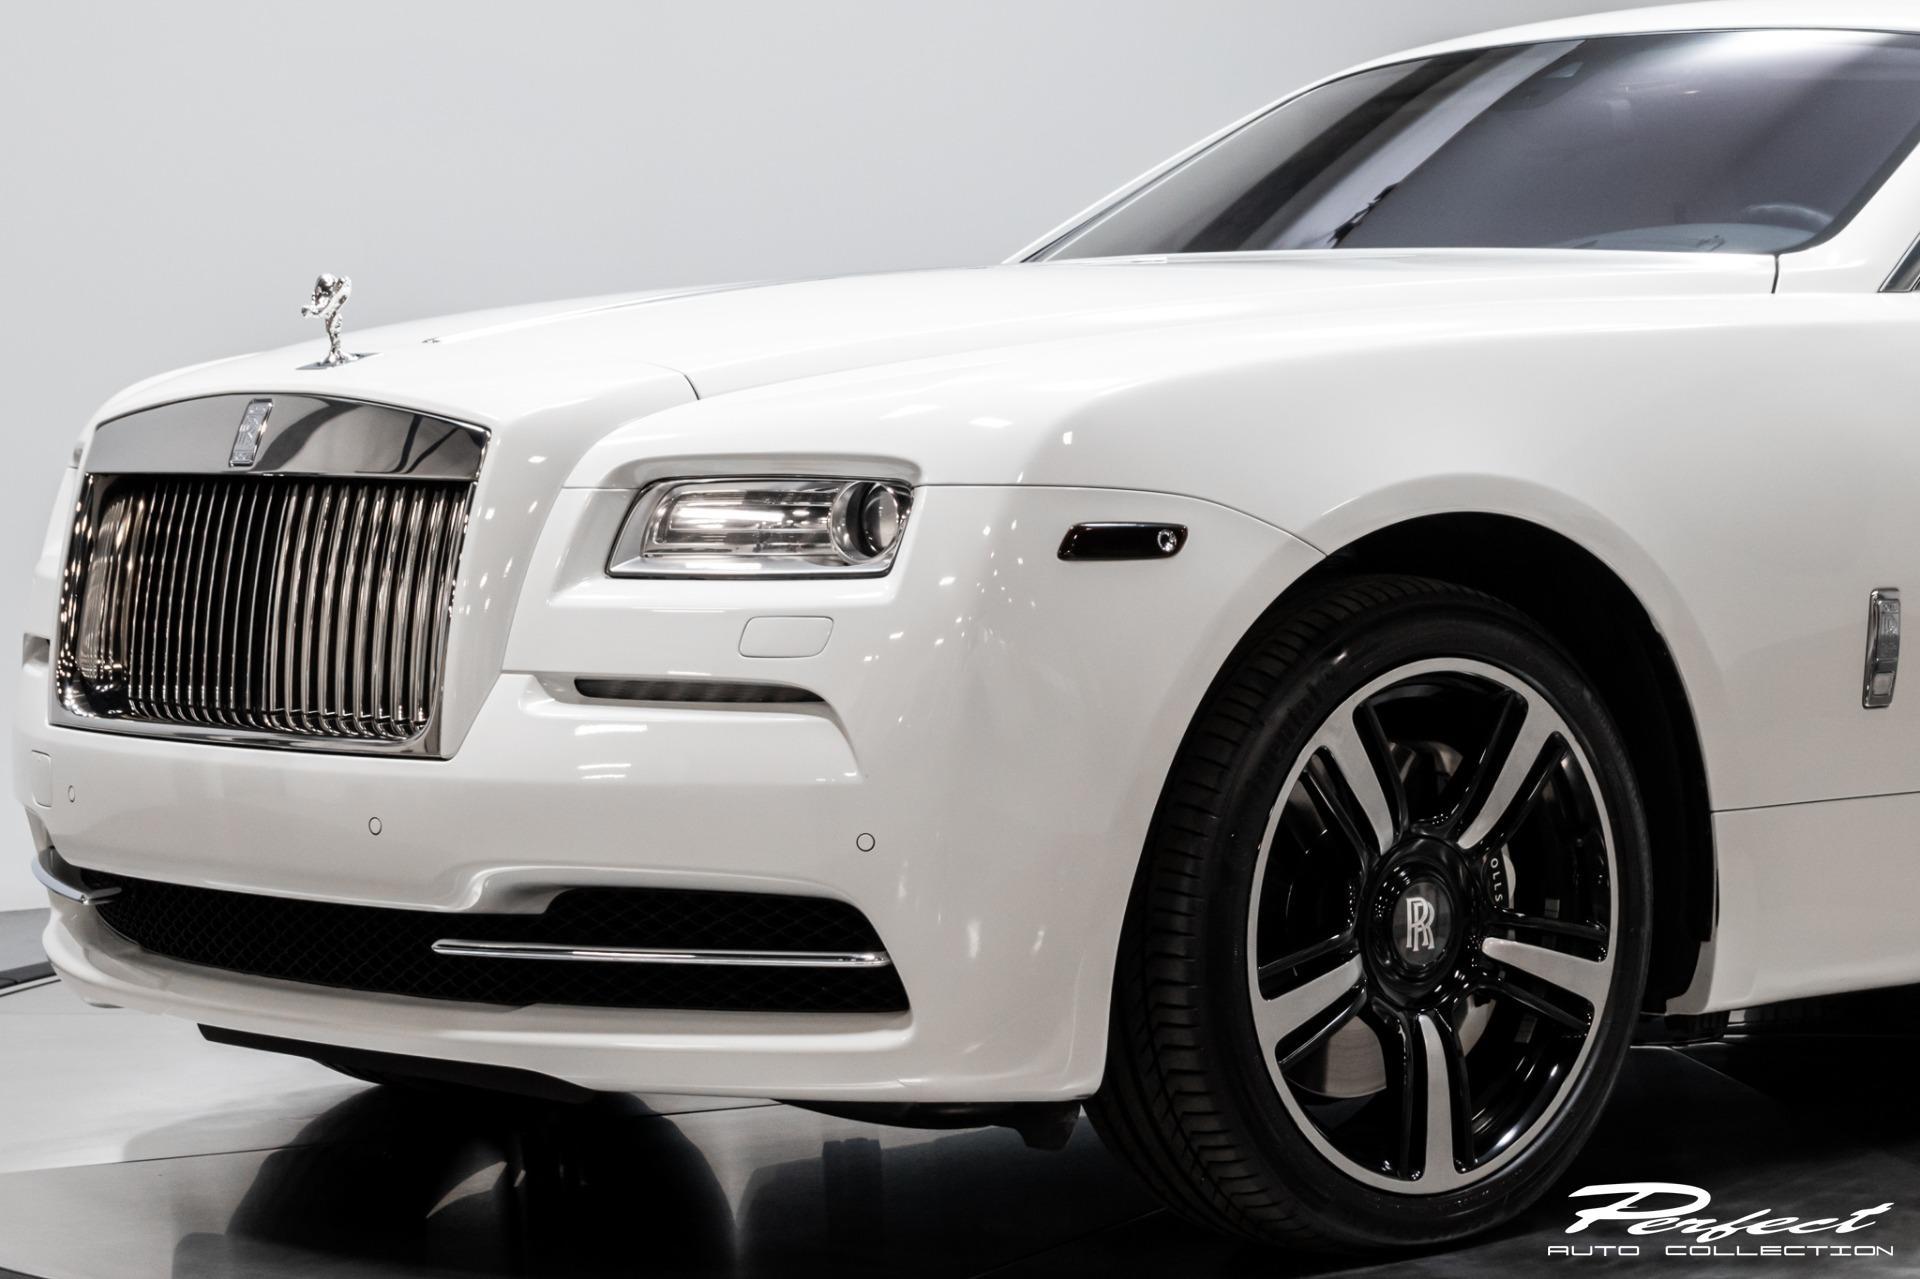 Used 2014 Rolls-Royce Wraith for sale $149,993 at Perfect Auto Collection in Akron OH 44310 4